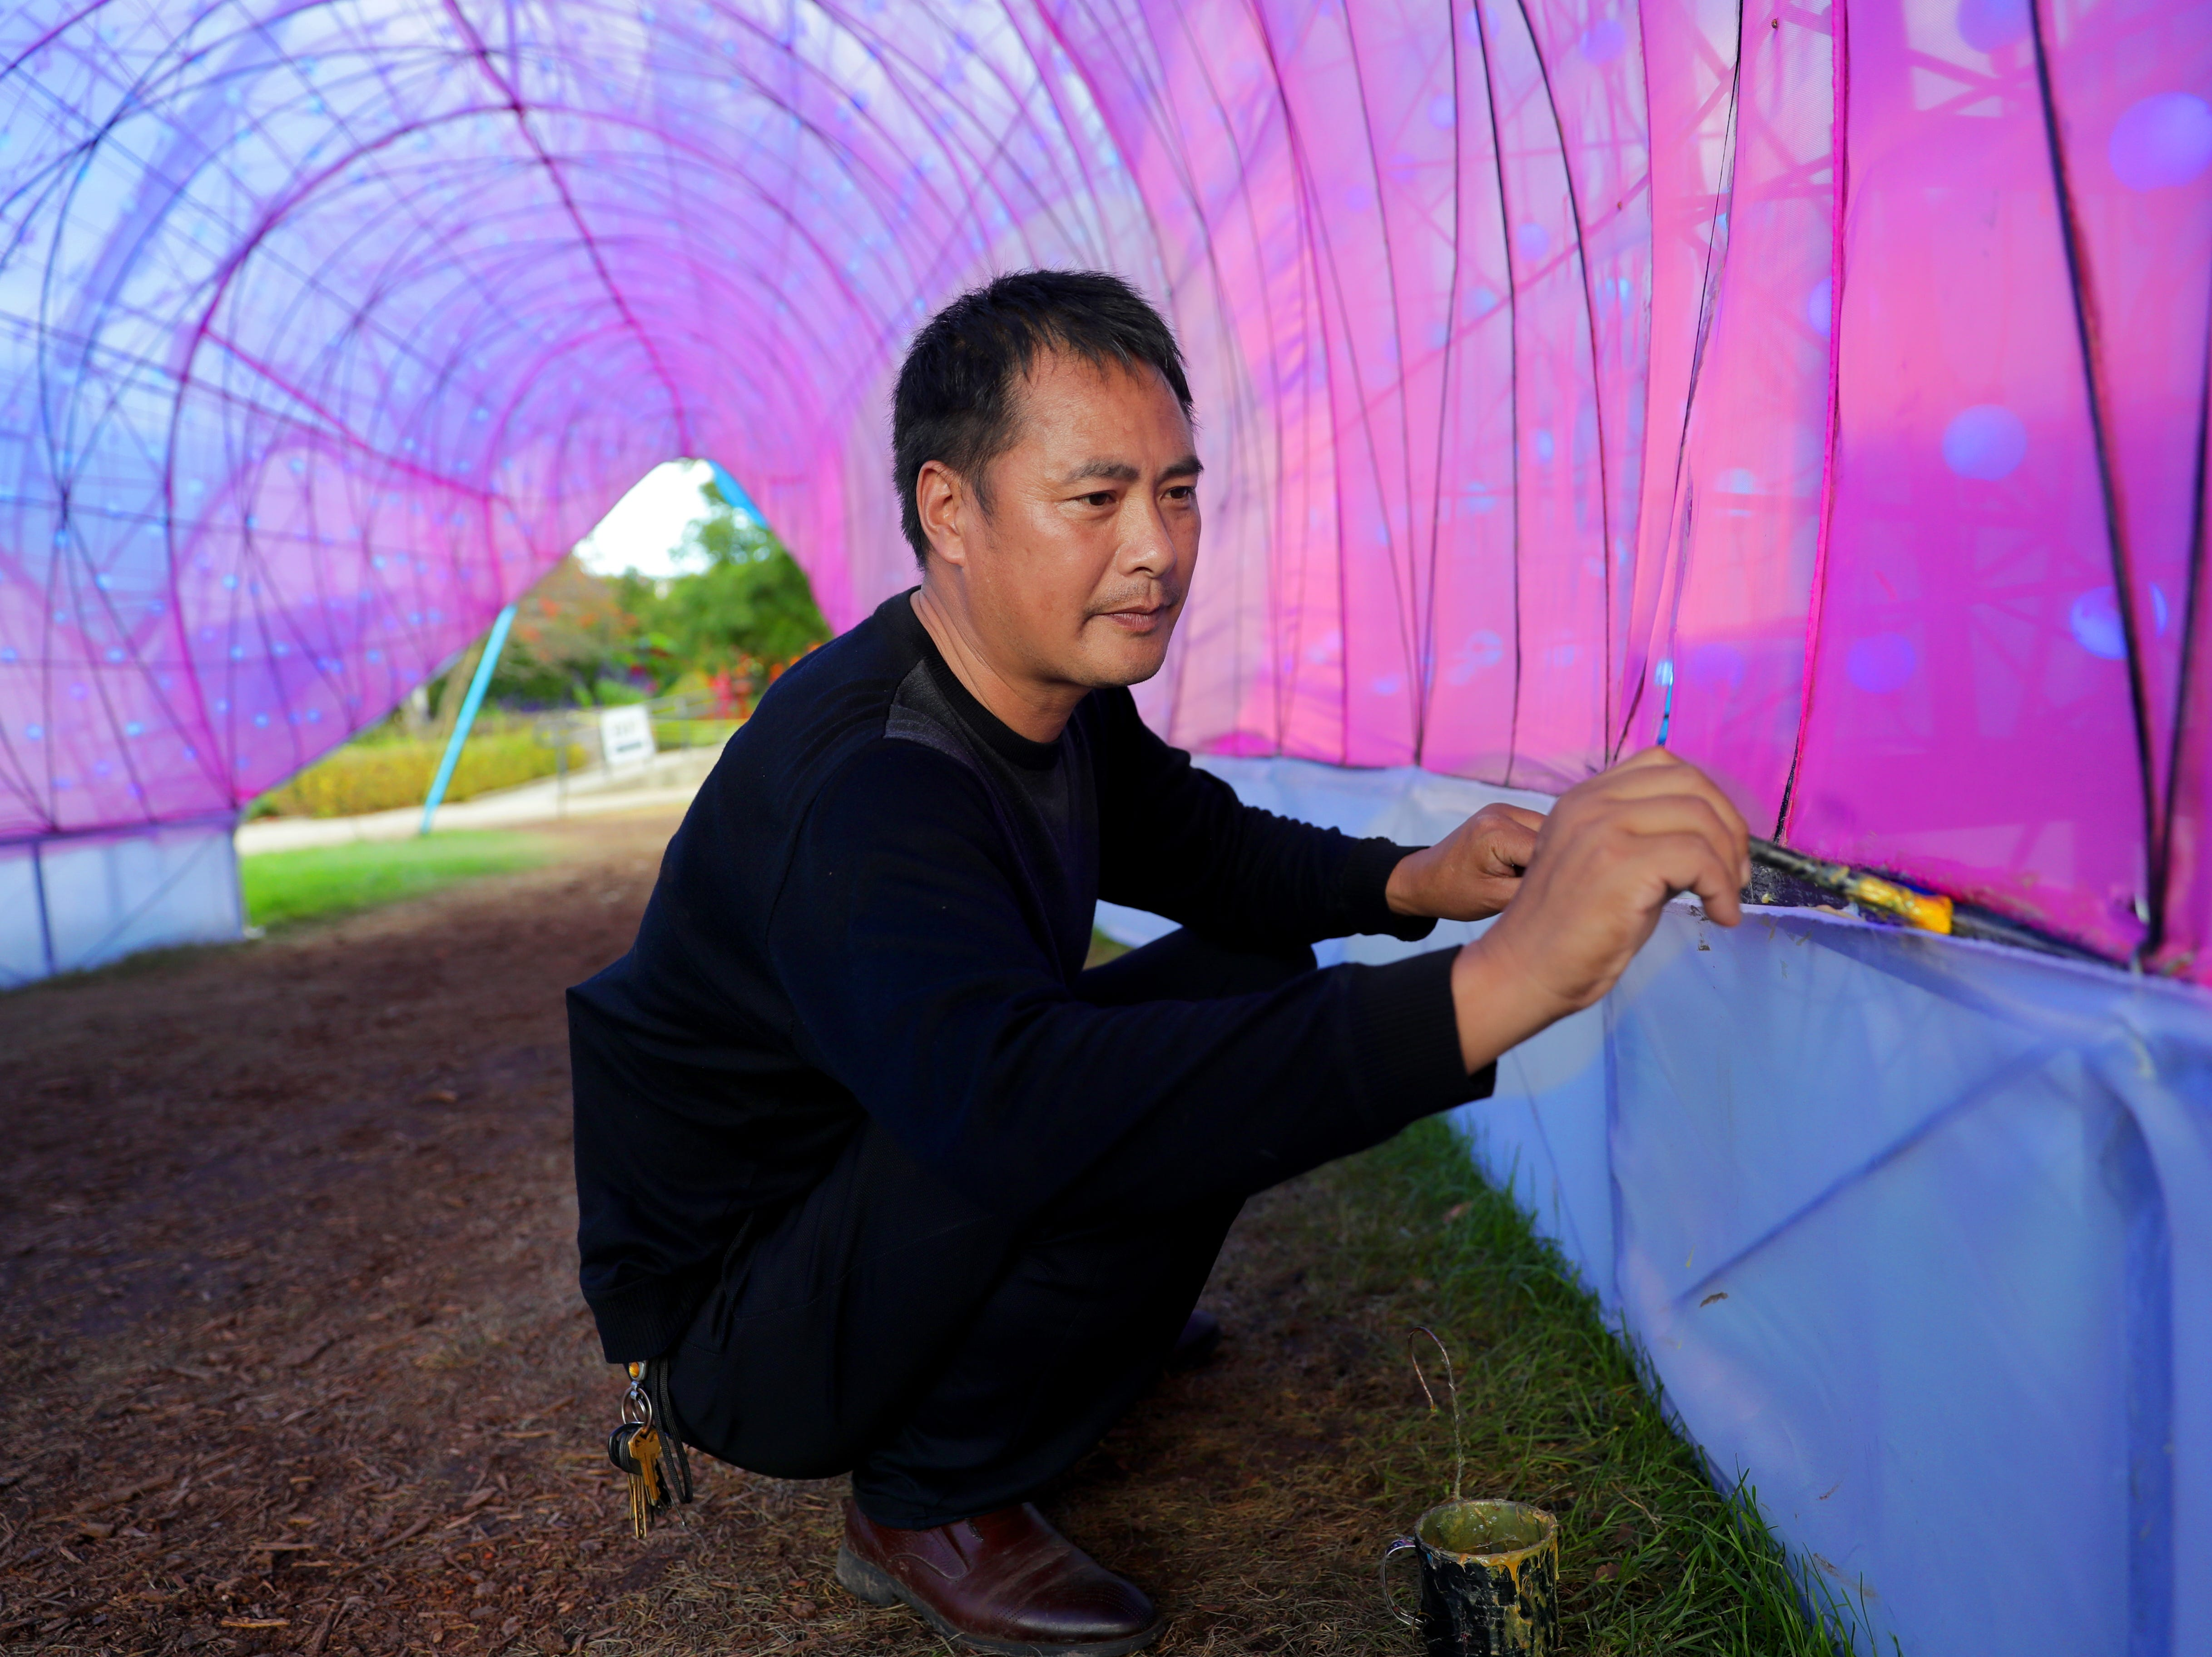 Liu Yufu, the China Lights supervisor of workers, uses an adhesive to secure fabric inside a 65-foot-long shark sculpture. Behind making the China Lights festival at Boerner Botanical Gardens at Whitnall Park run smoothly are the Chinese artisans and entertainers.